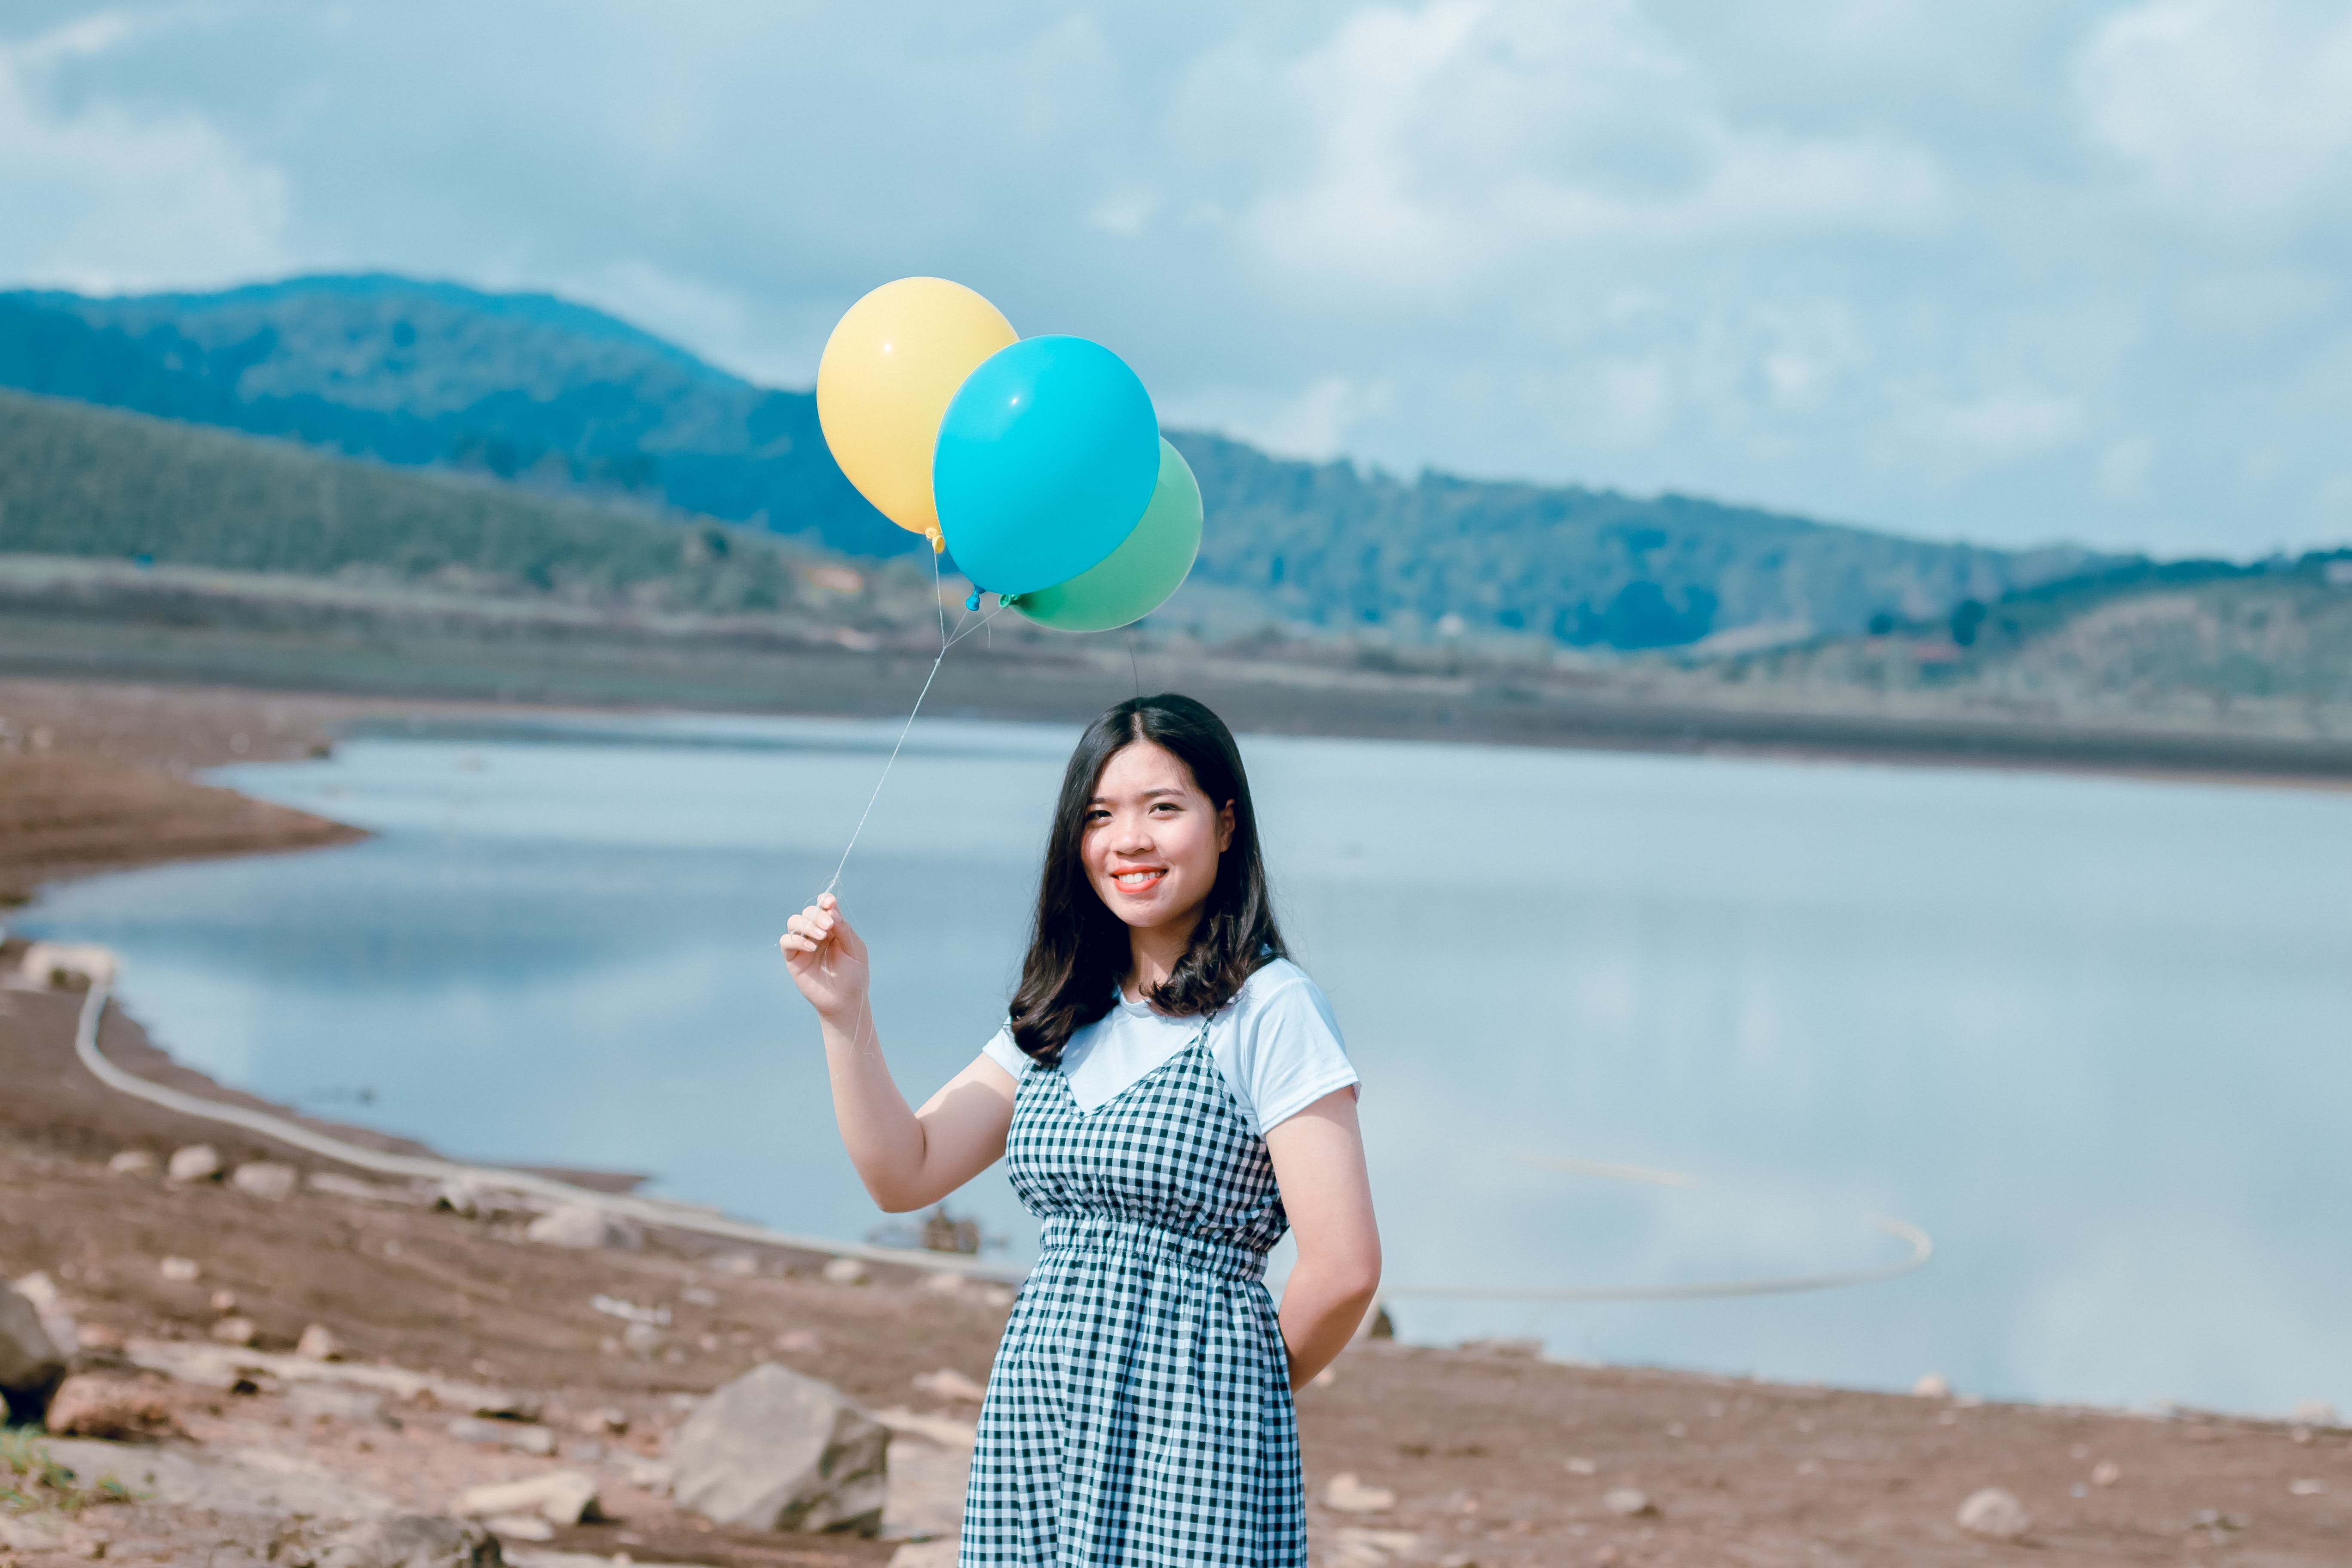 Woman Near Seashore Holding Balloons